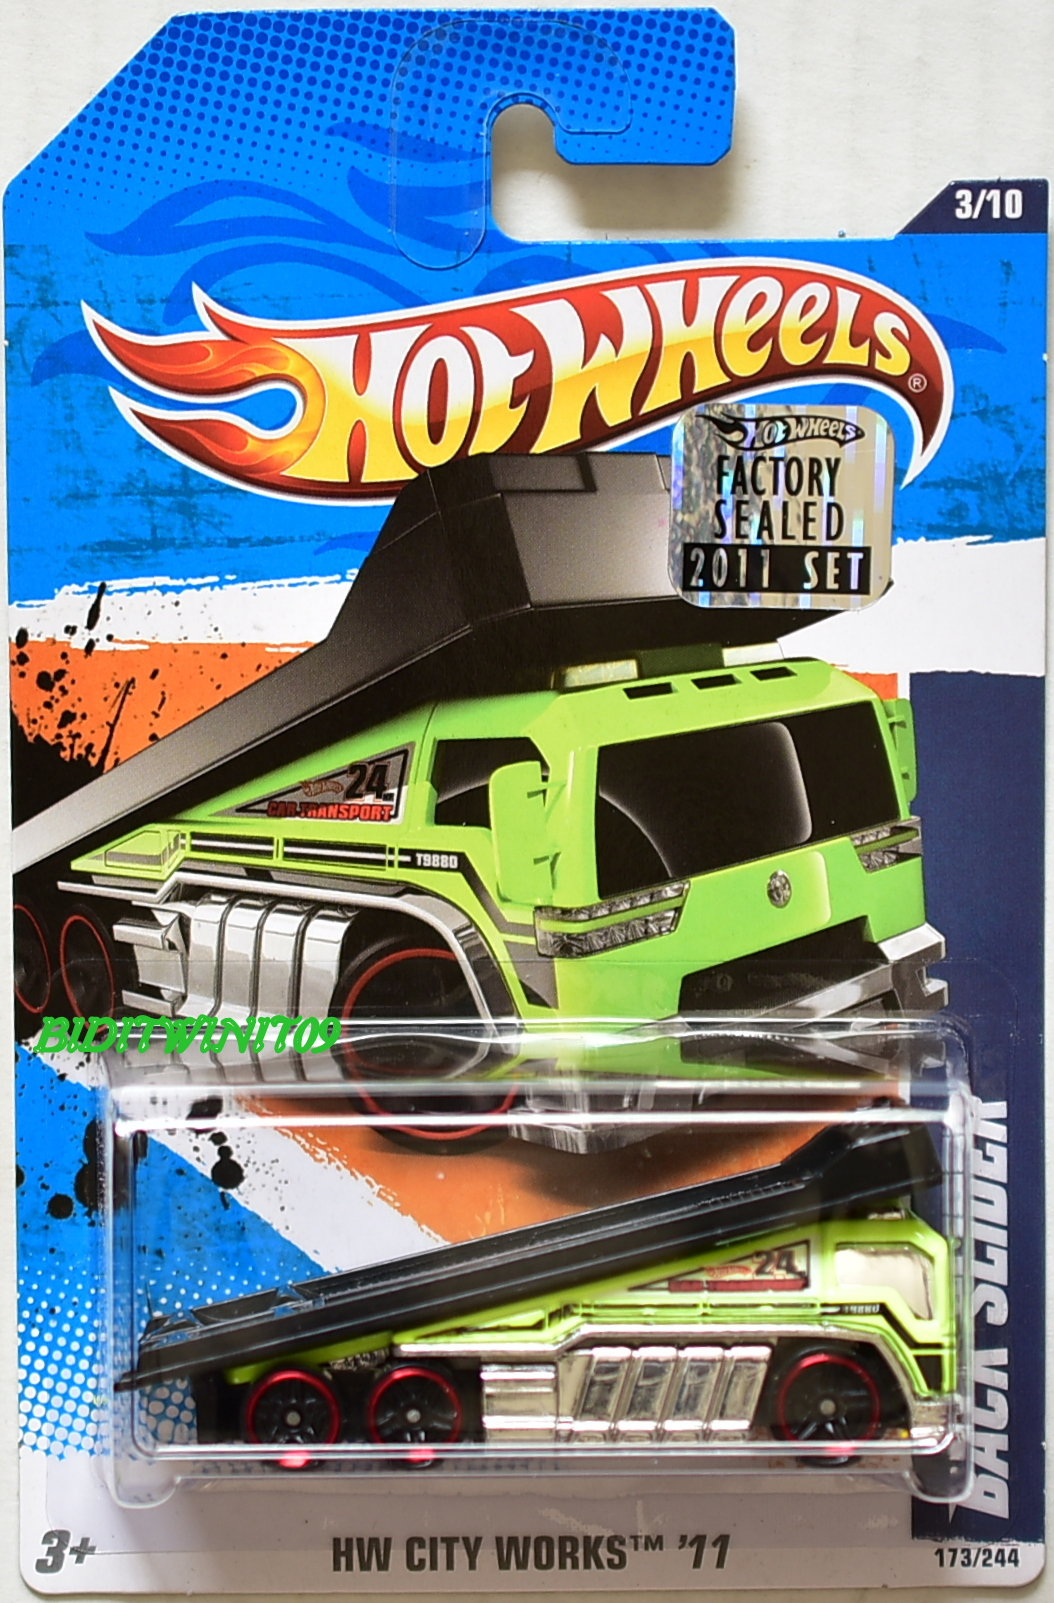 HOT WHEELS 2011 HW CITY WORKS BACK SLIDER #3/10 GREEN FACTORY SEALED